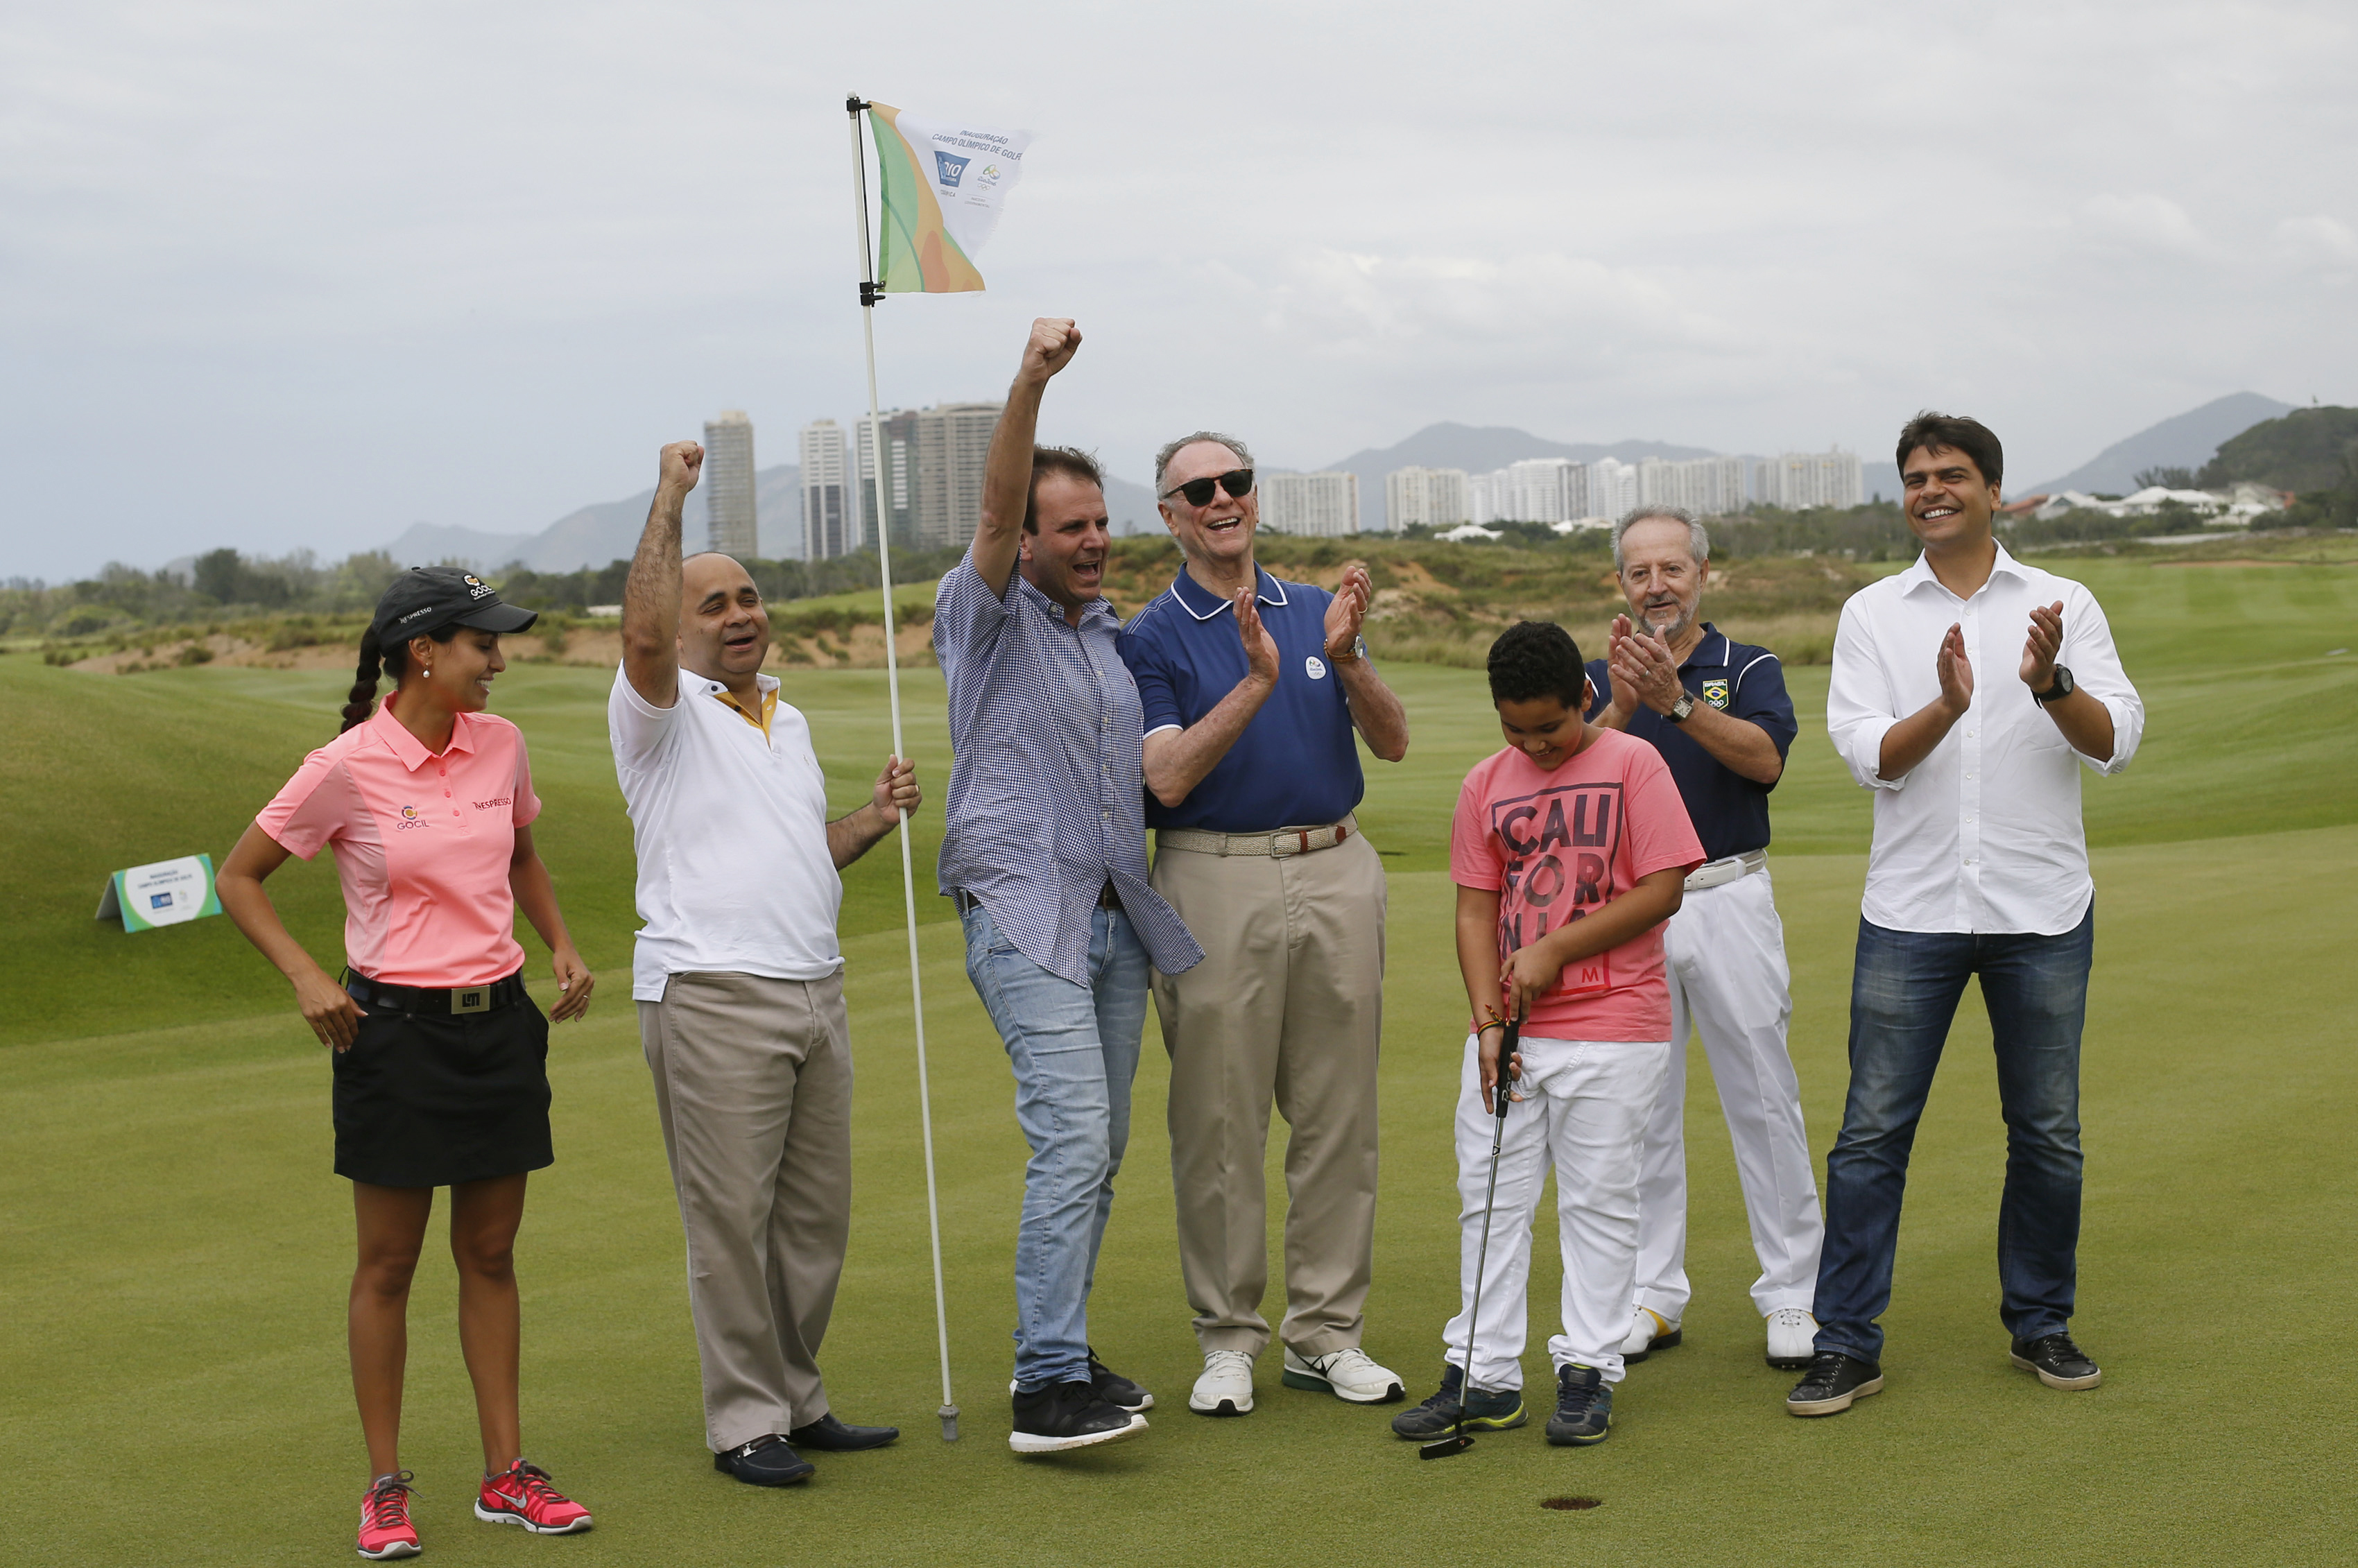 FILE - In this Nov. 22, 2015 file photo, Rio de Janeiro Mayor Eduardo Paes, third left, and Brazil Olympic Committee President Carlos Nuzman, center, celebrate during a ceremony at the Olympic Golf Course in Rio de Janeiro, Brazil. A Brazilian judge has f